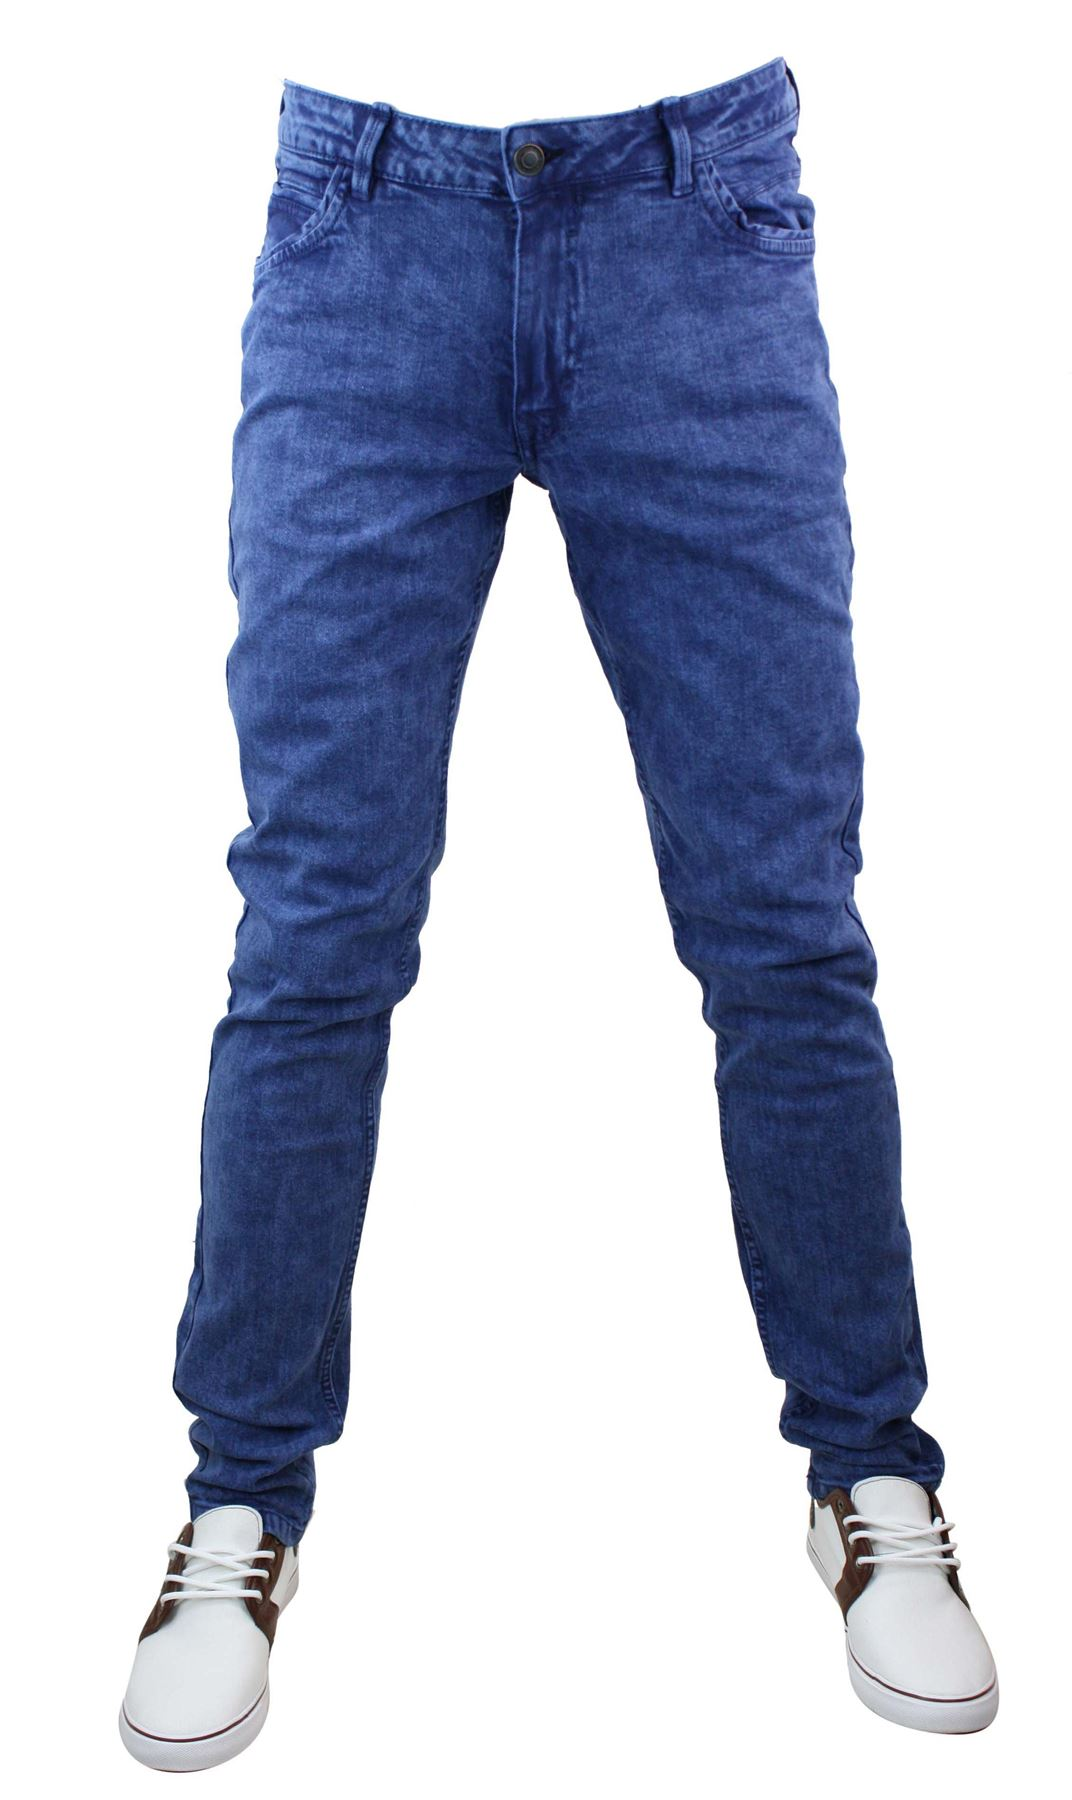 jeans homme denim designer coupe cintr e skinny stretch 100 coton ebay. Black Bedroom Furniture Sets. Home Design Ideas